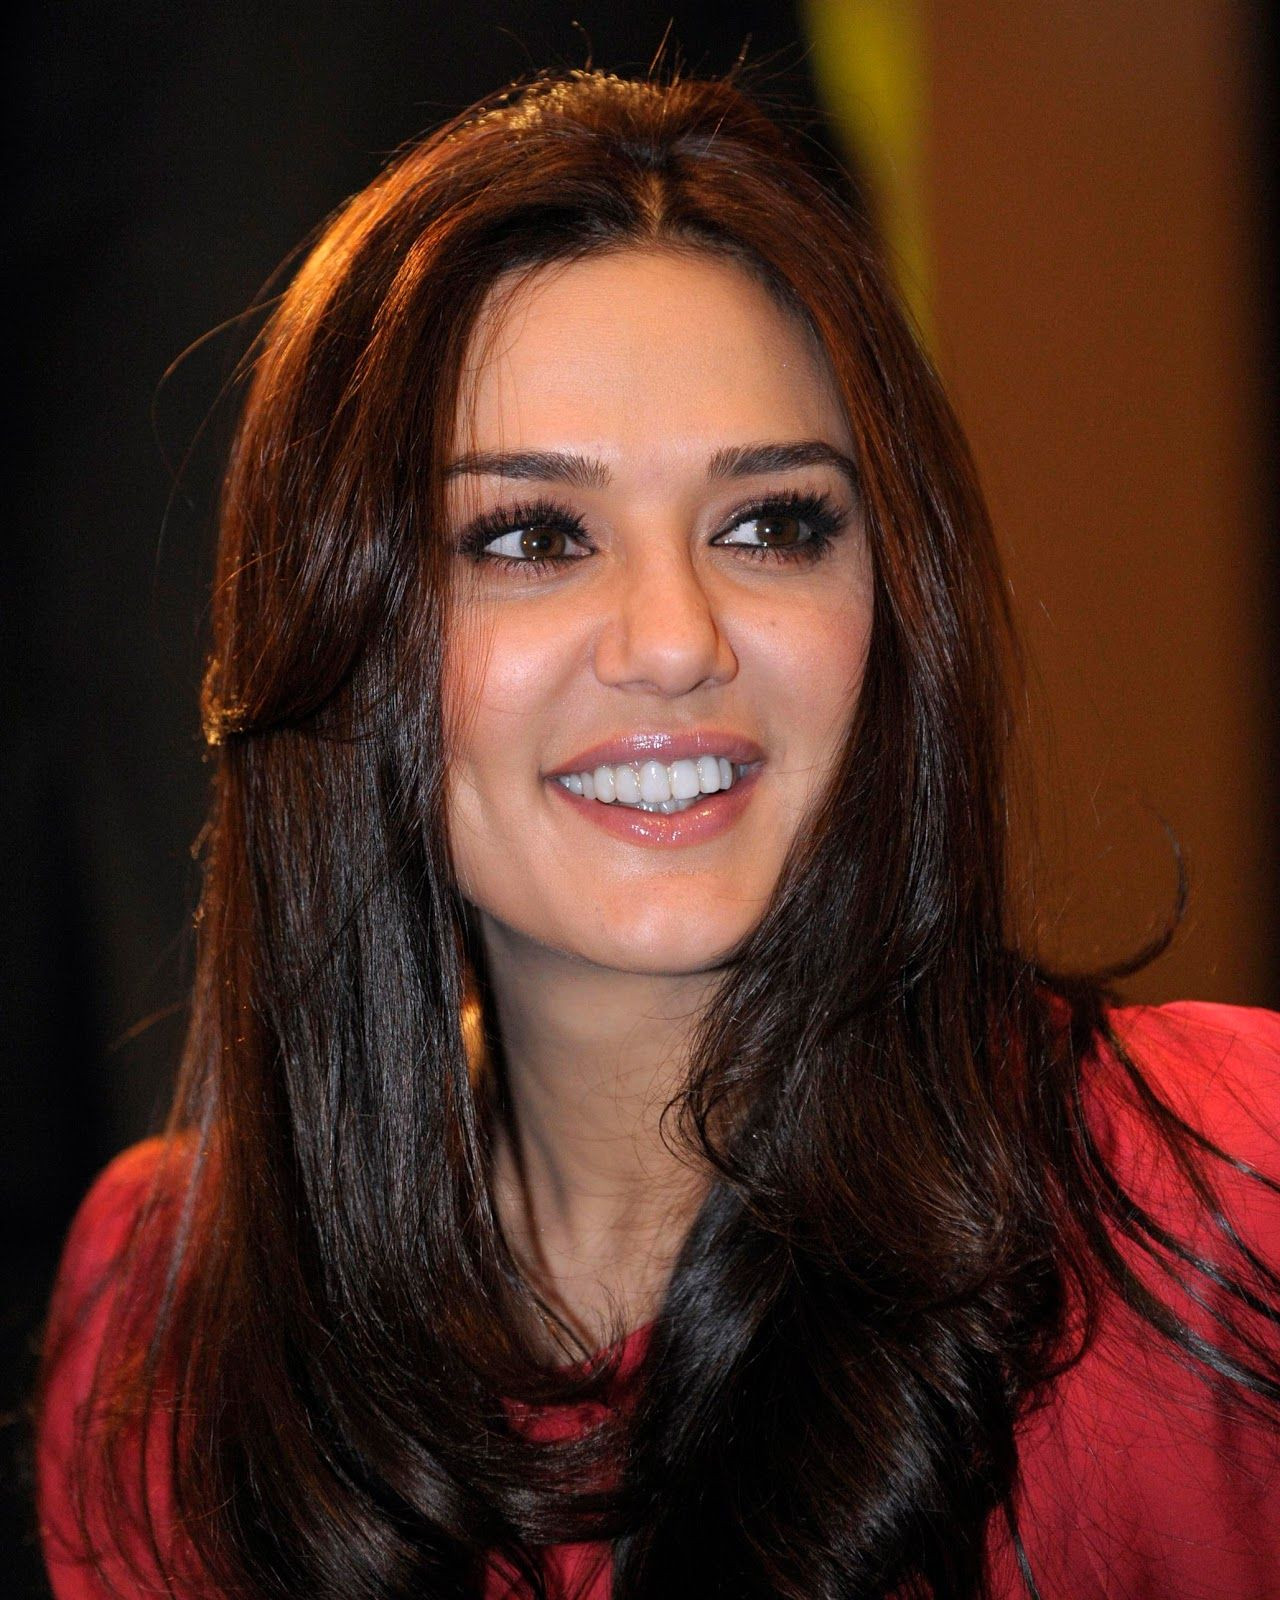 HD Photos Bollywood Actress Gorgeous Dimple Girl Preity Zinta 1280x1600